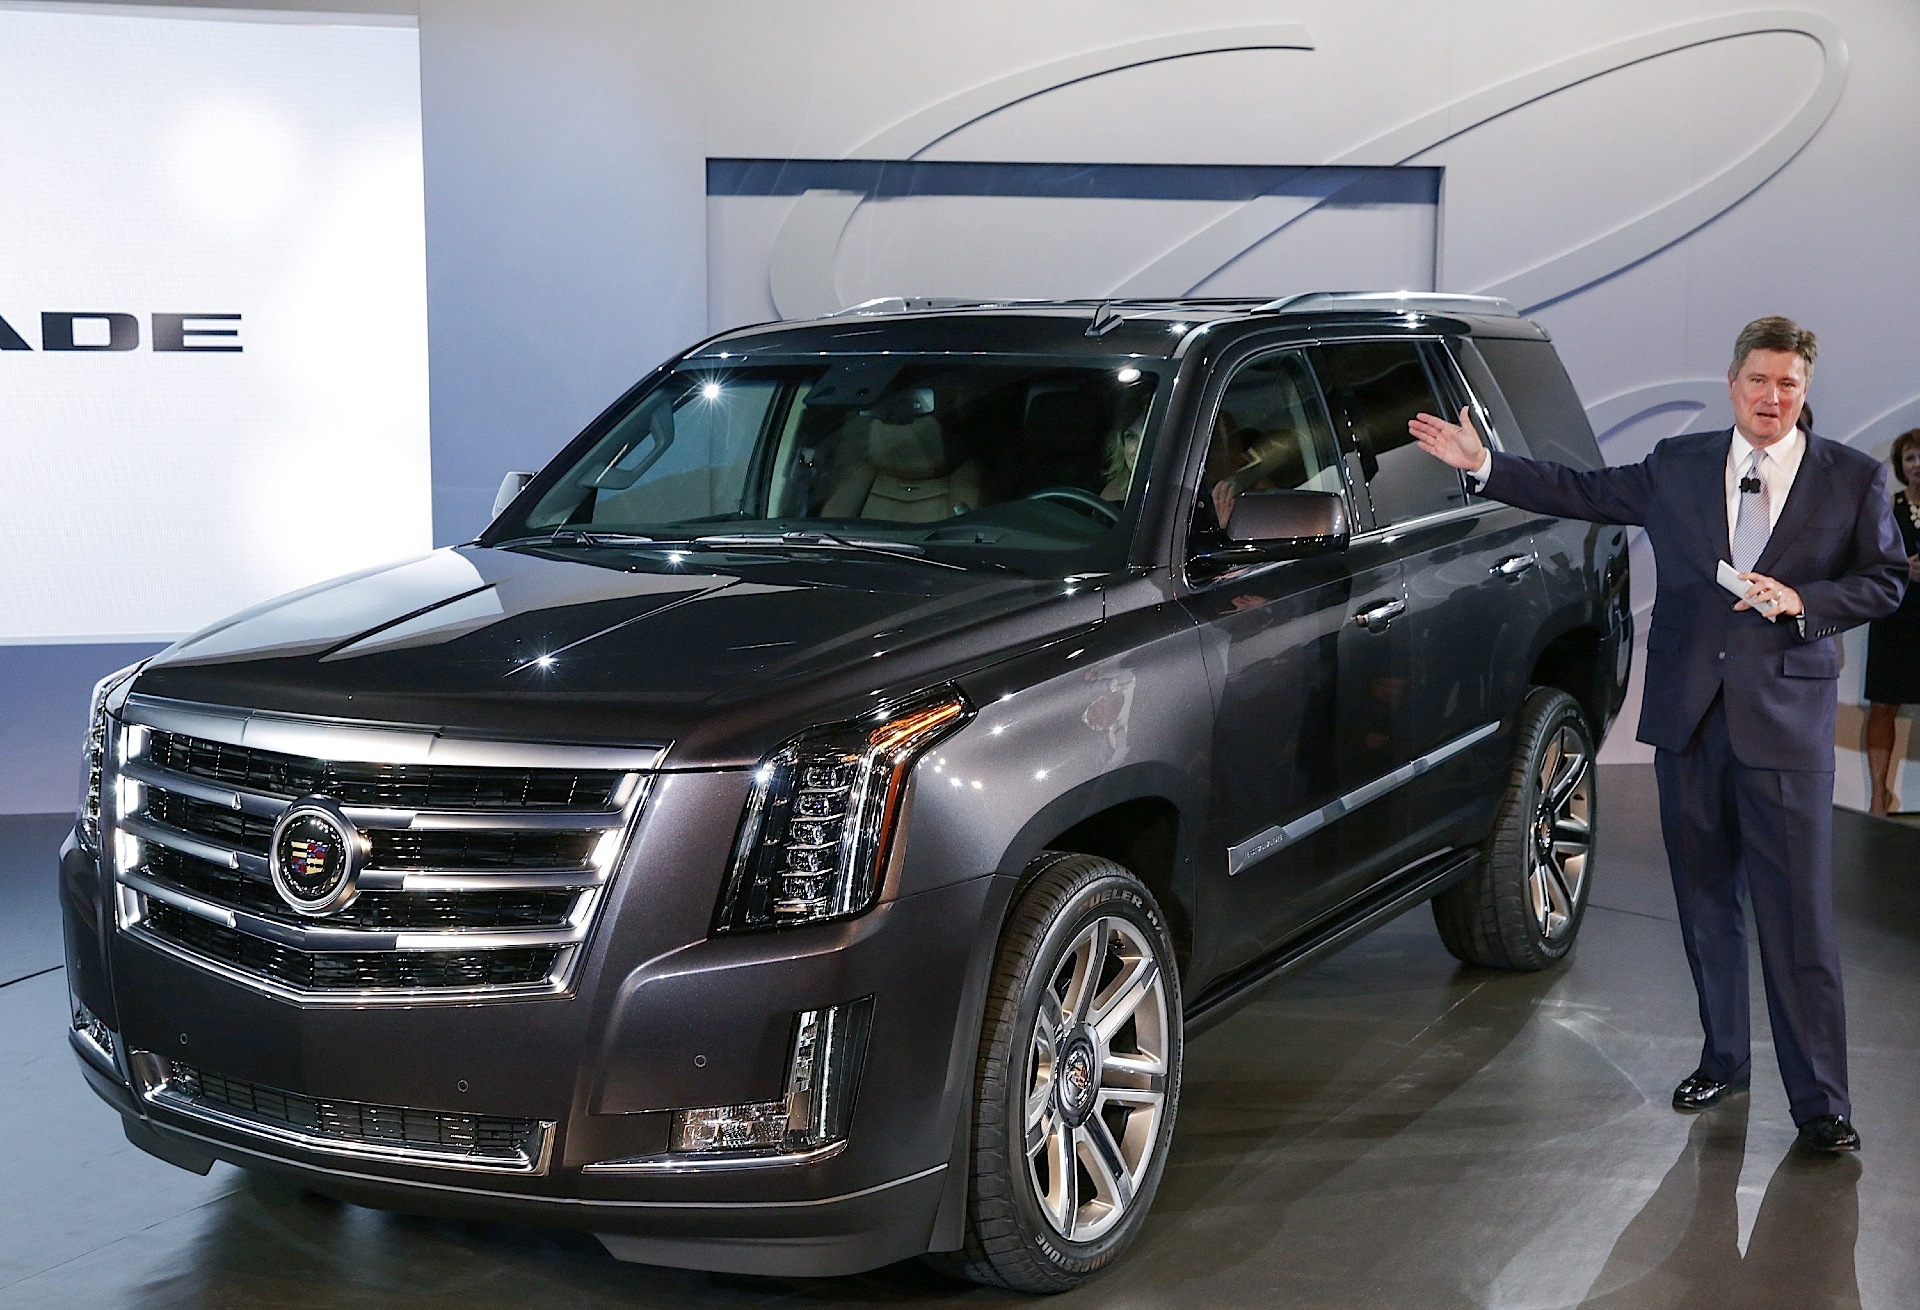 Cadillac 2014 Escalade, a giant SUV originally designed #9